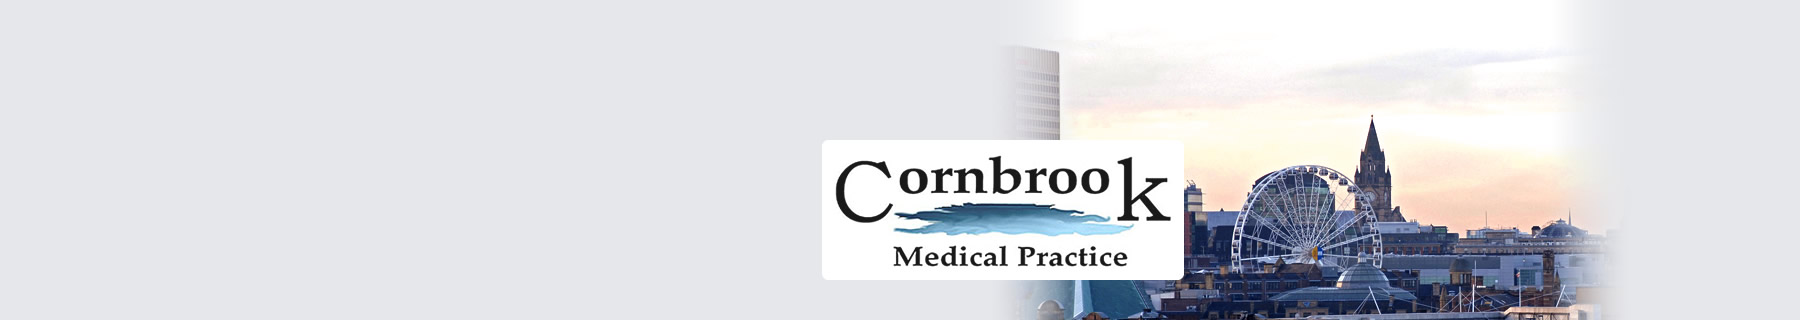 Cornbrook Medical Centre direct all inbound calls to one of their sites, which acts as a communications hub for the practice